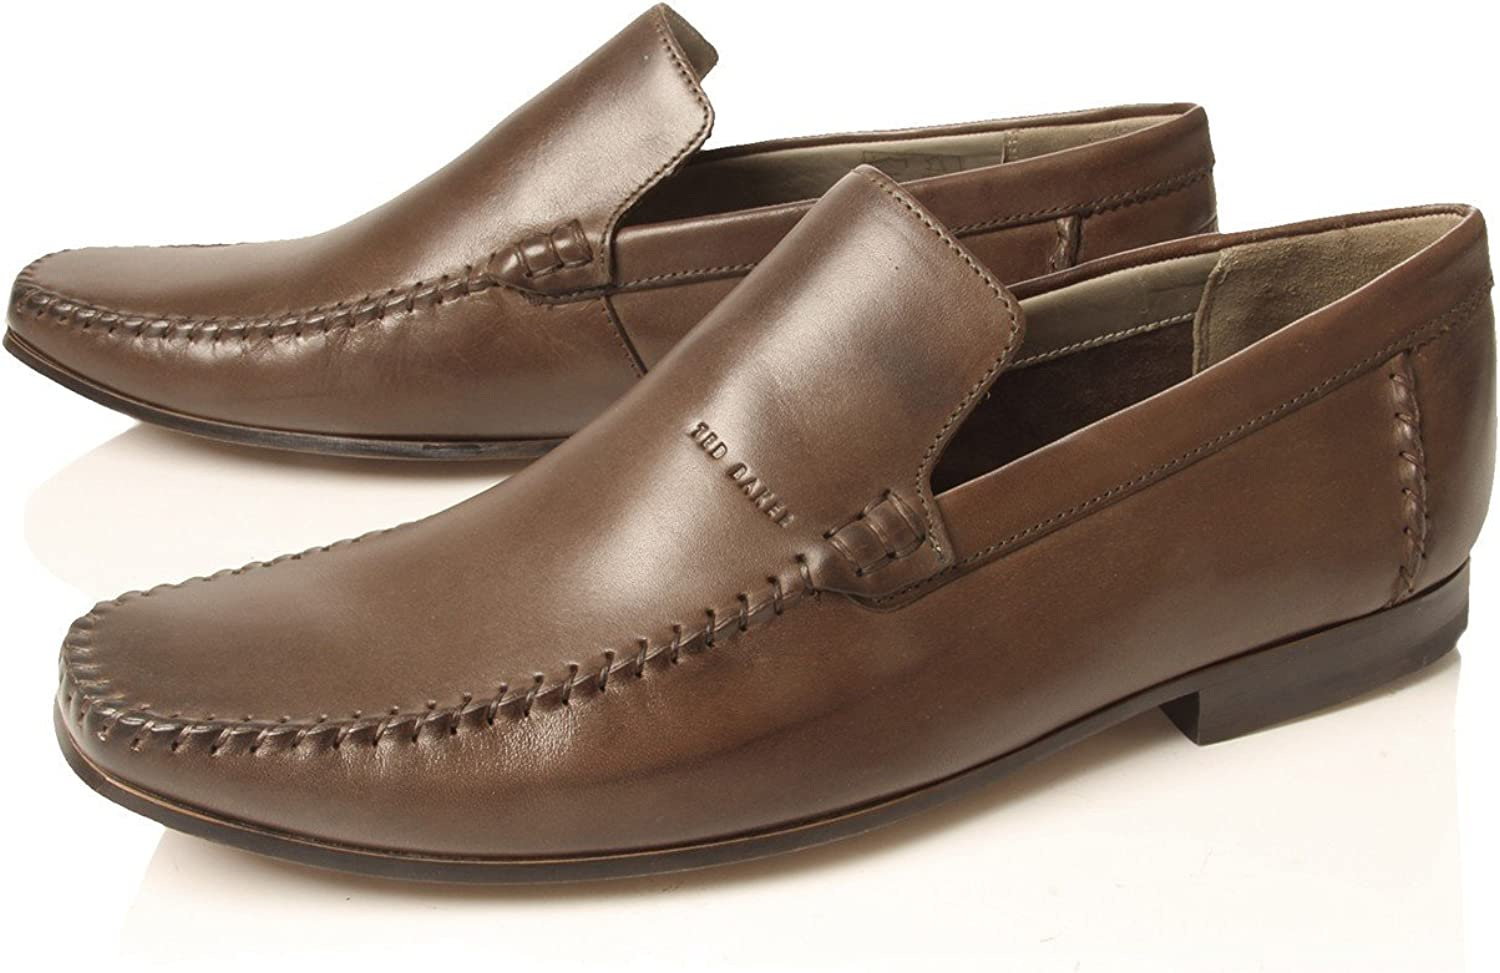 TED BAKER Real Leather Slip On Formal shoes's